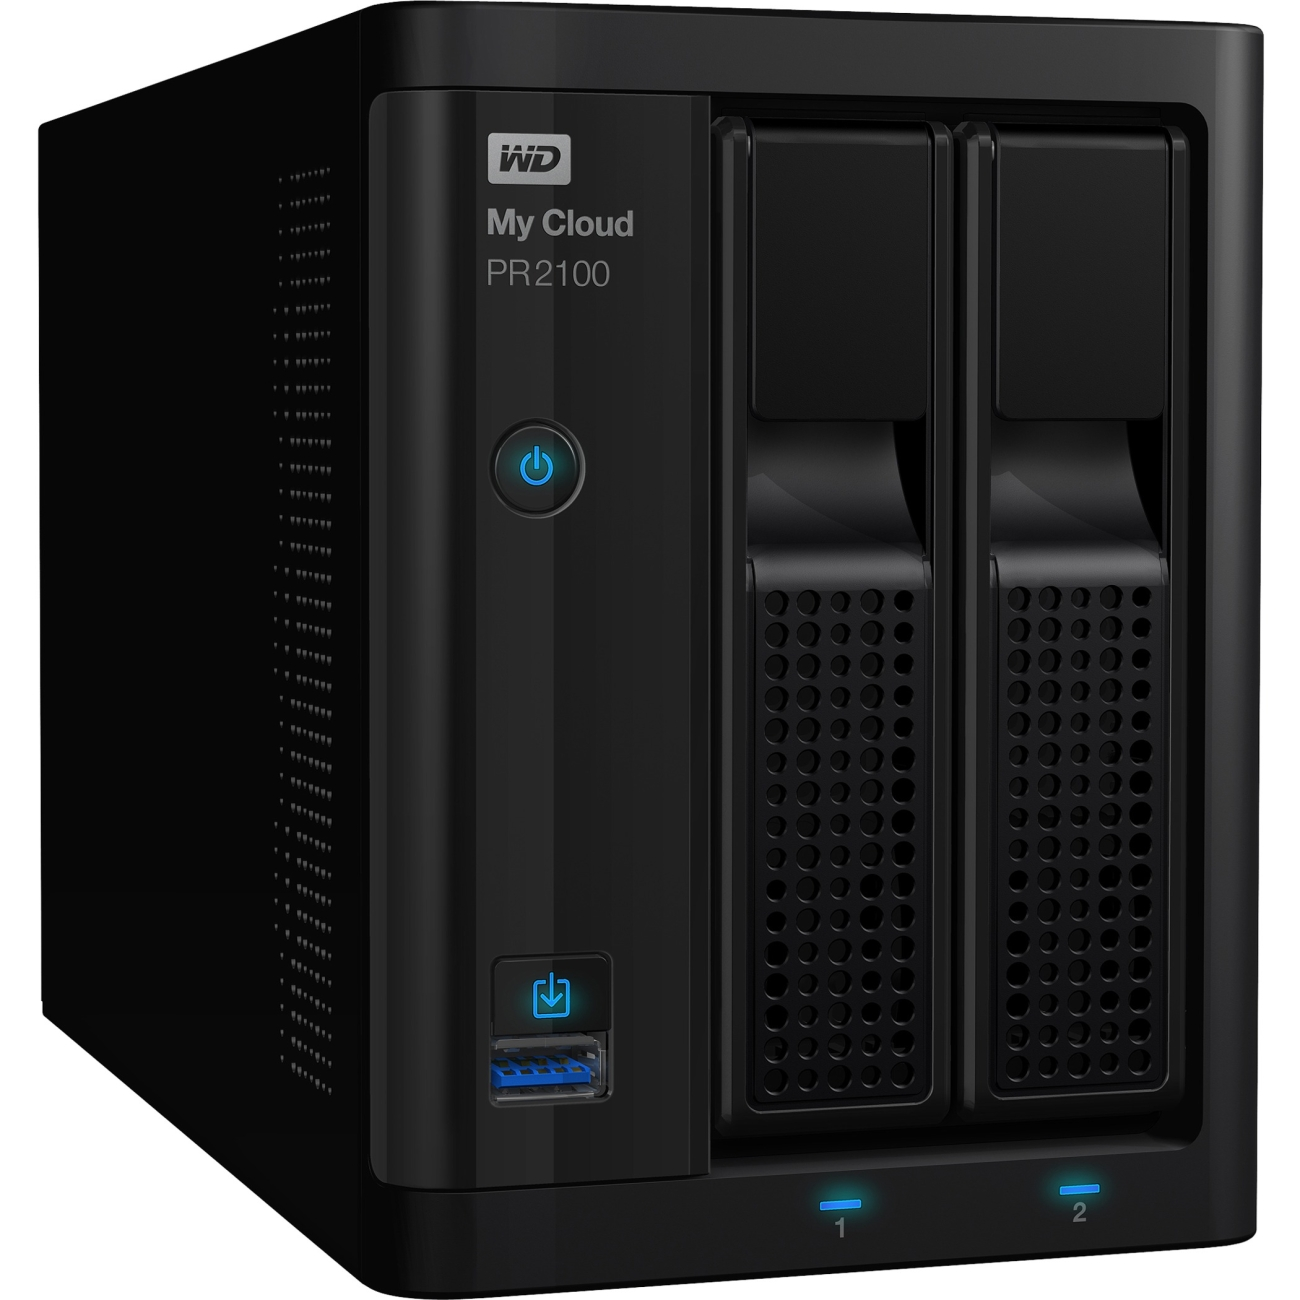 Wd 8tb My Cloud Pr2100 Pro Series Media Server With Transcoding, Nas - Network Attached Storage - Intel Pentium N3710 Quad-core [4 Core] 1.60 Ghz - 2 X Total Bays - 8 Tb Hdd - 4 (wdbbcl0080jbk-nesn)